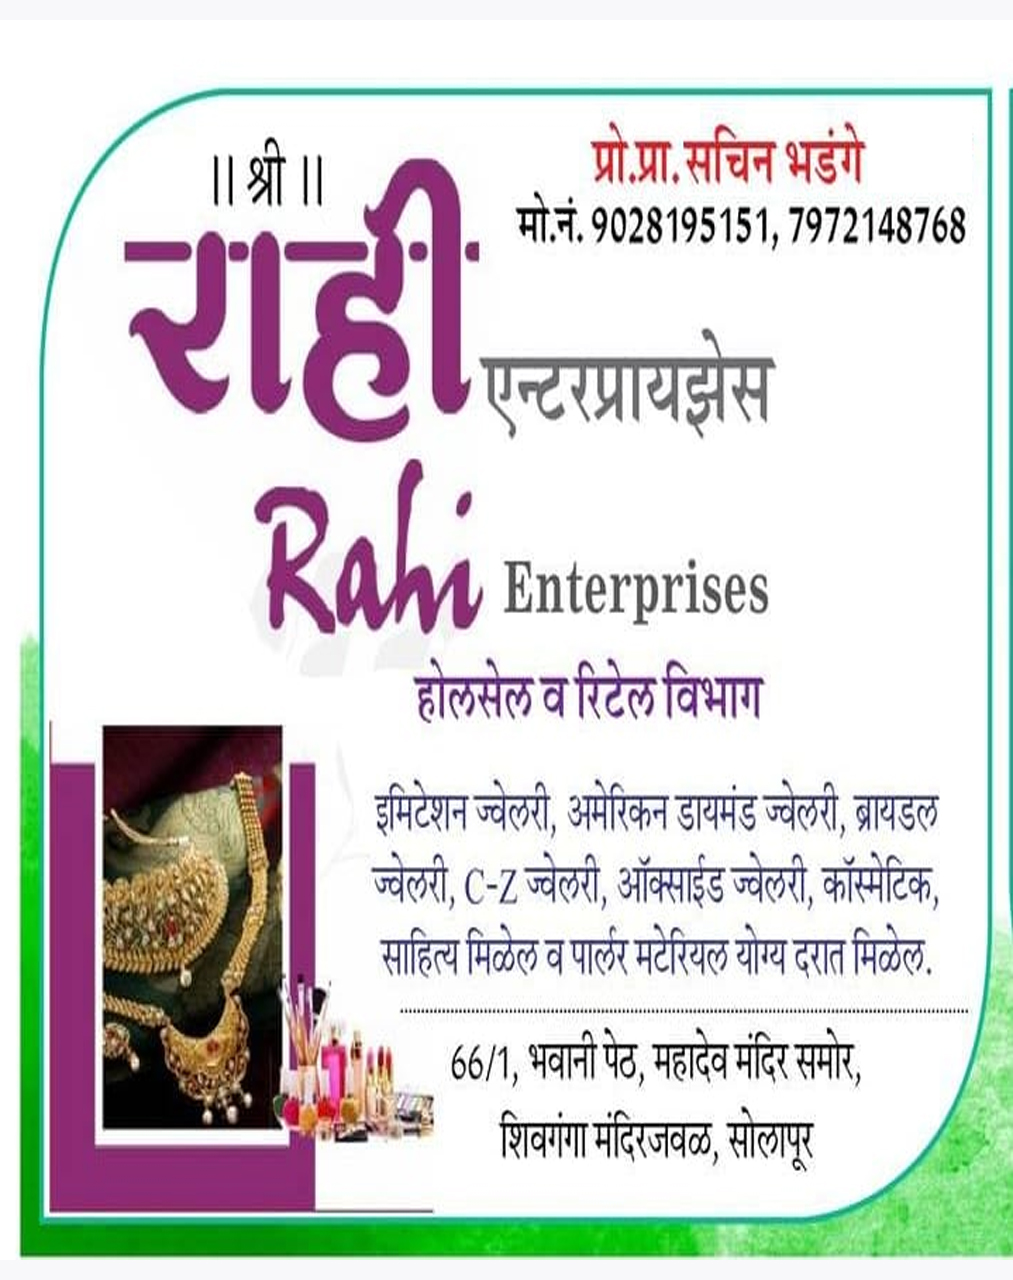 RAHI ENTERPRISES